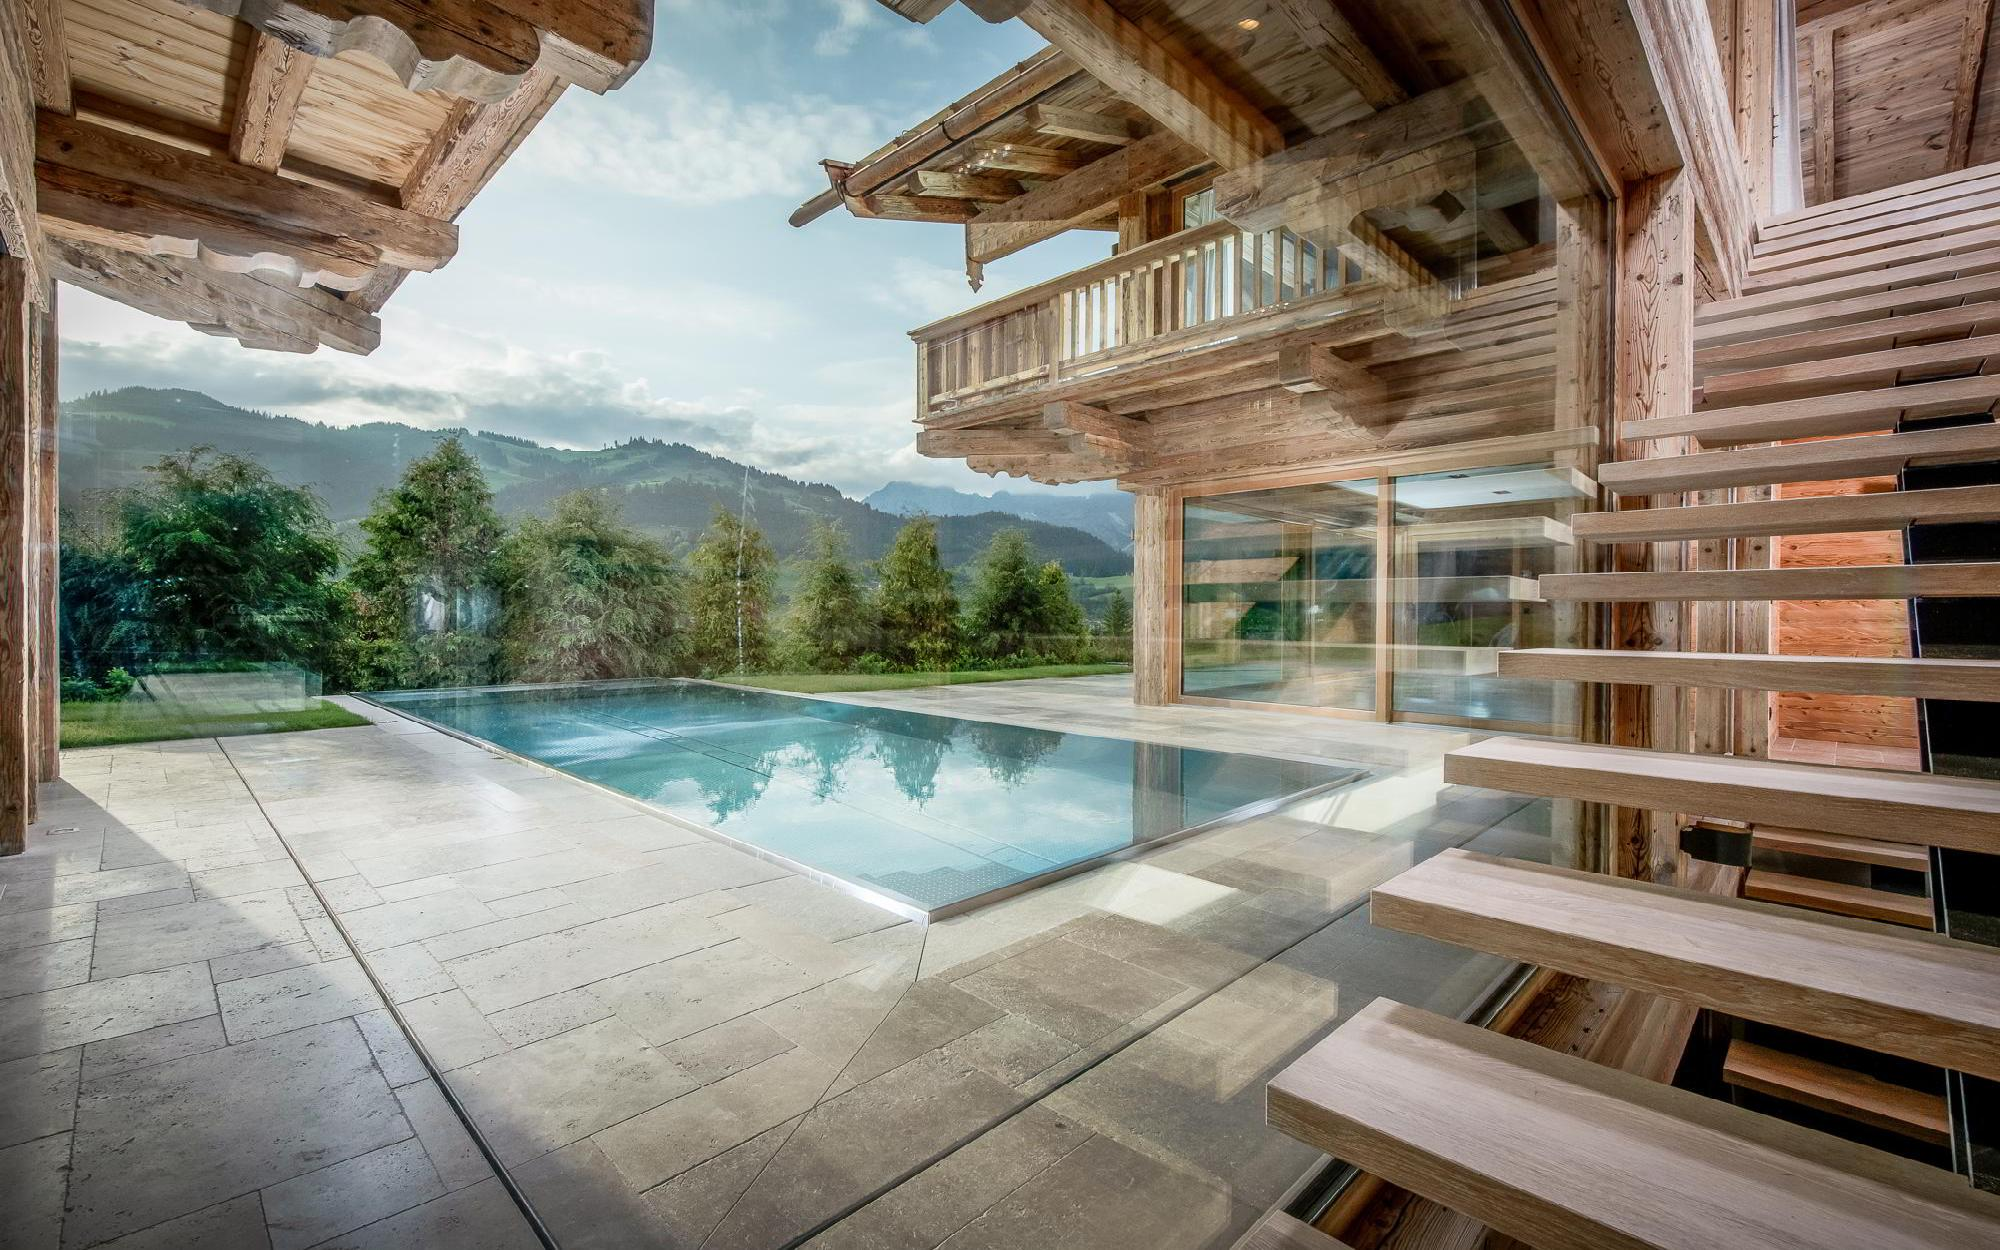 Luxury Designer Chalet in famous Alpine region For Sale - Reith near Kitzbuehel